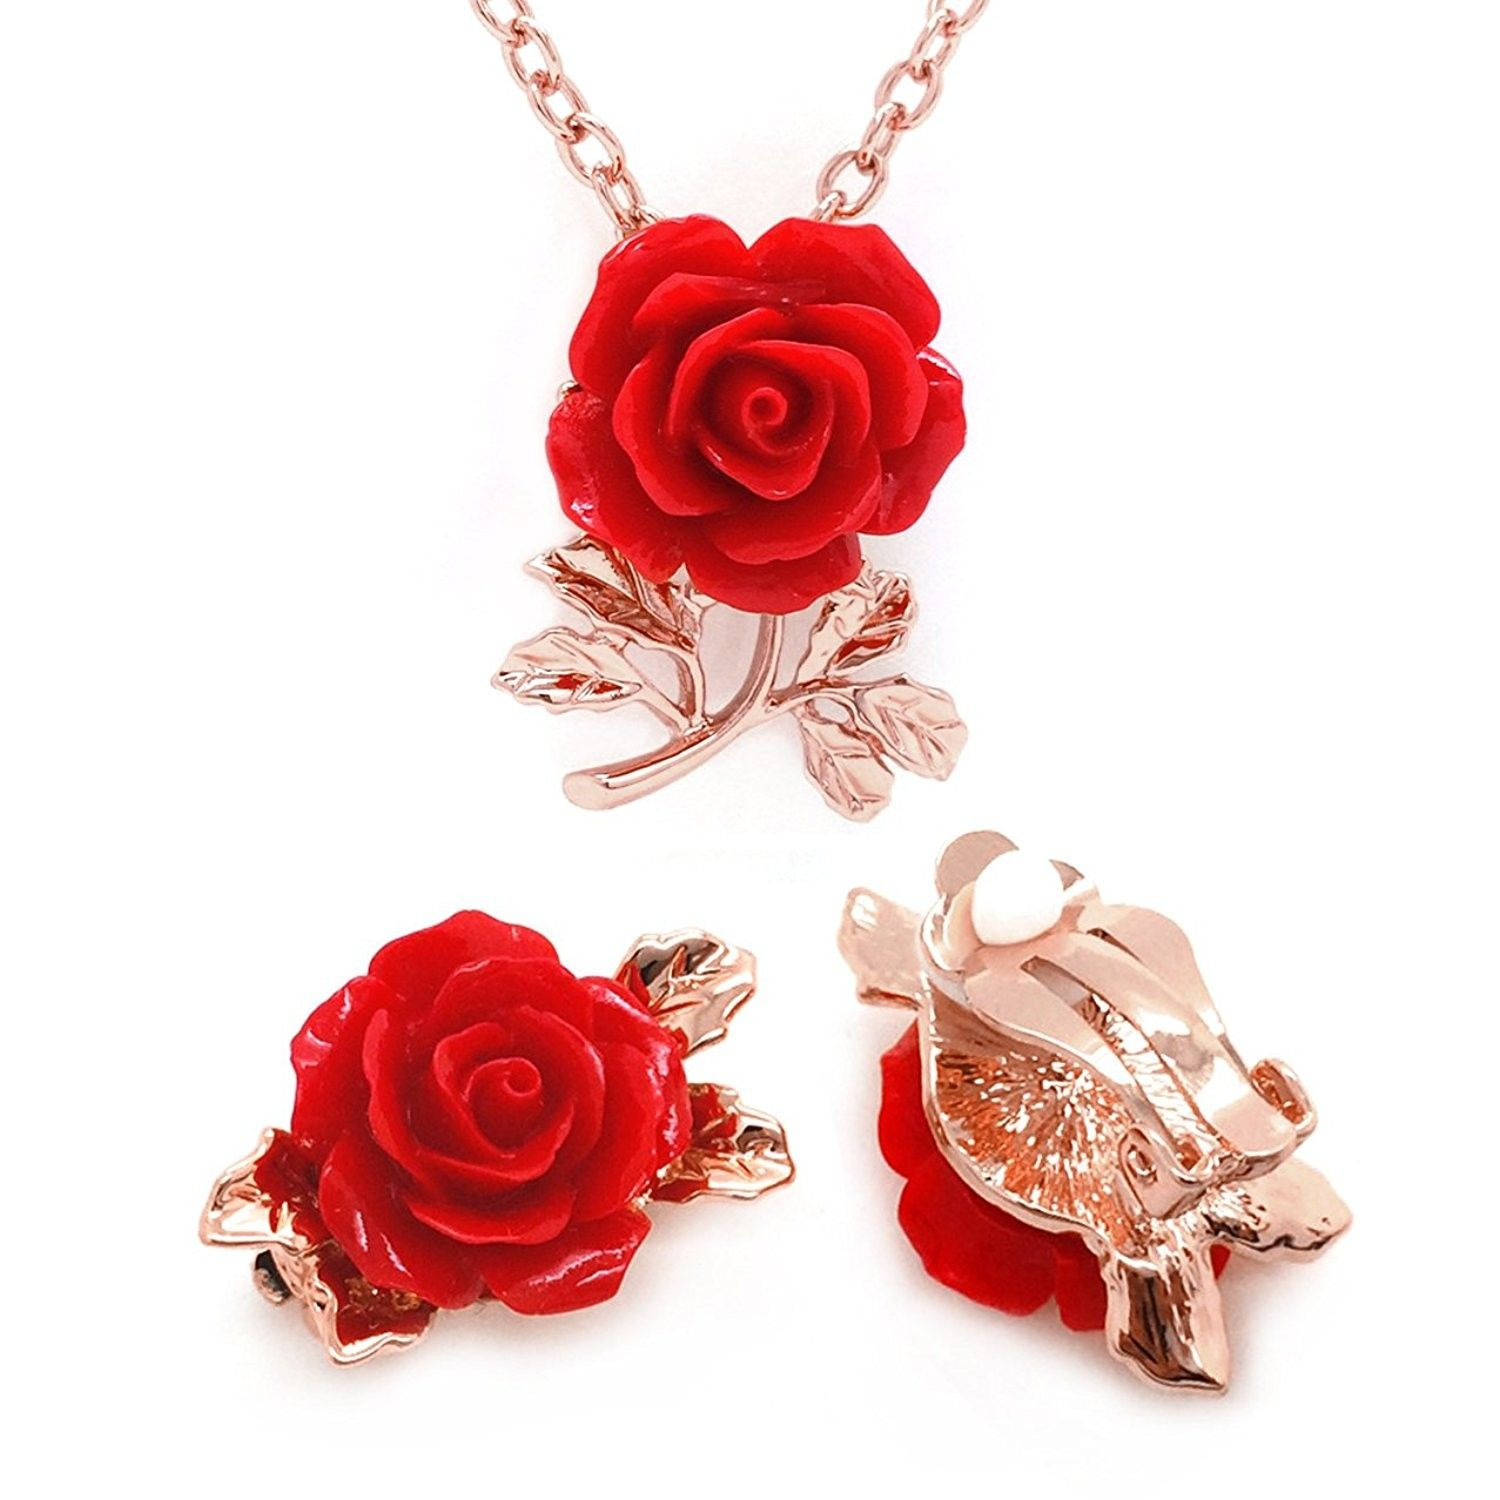 Red Flower Jewelry Set Rose Gold Plated Pendant Necklace Matching Clip On Earrings C012n9mib6s Silver Jewelry Design Jewelry Design Bride Jewelry Set